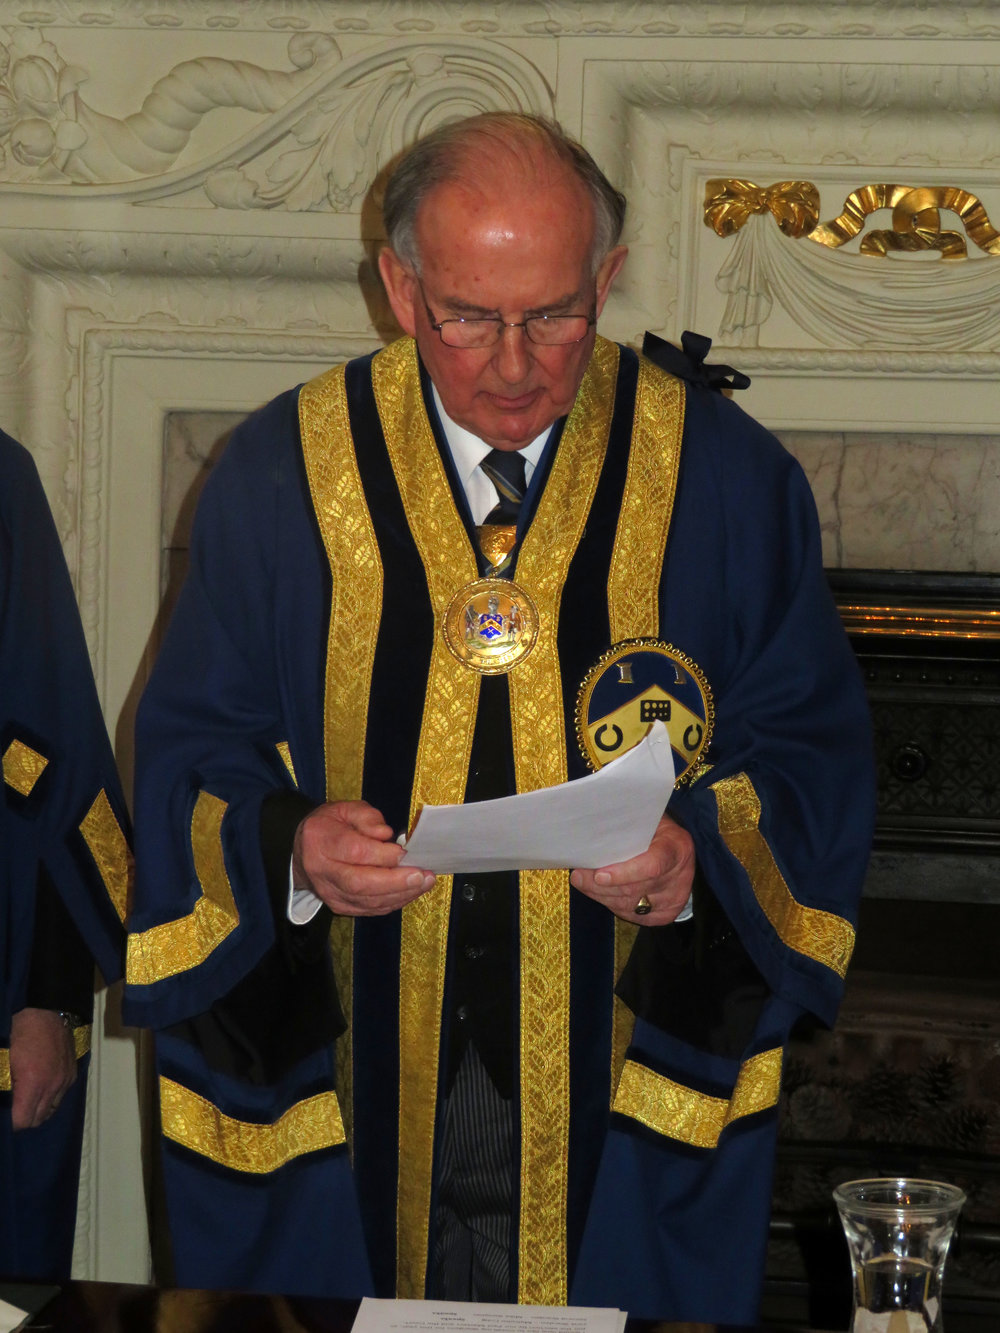 First Warden John Walsham swearing the Oath to become The Master